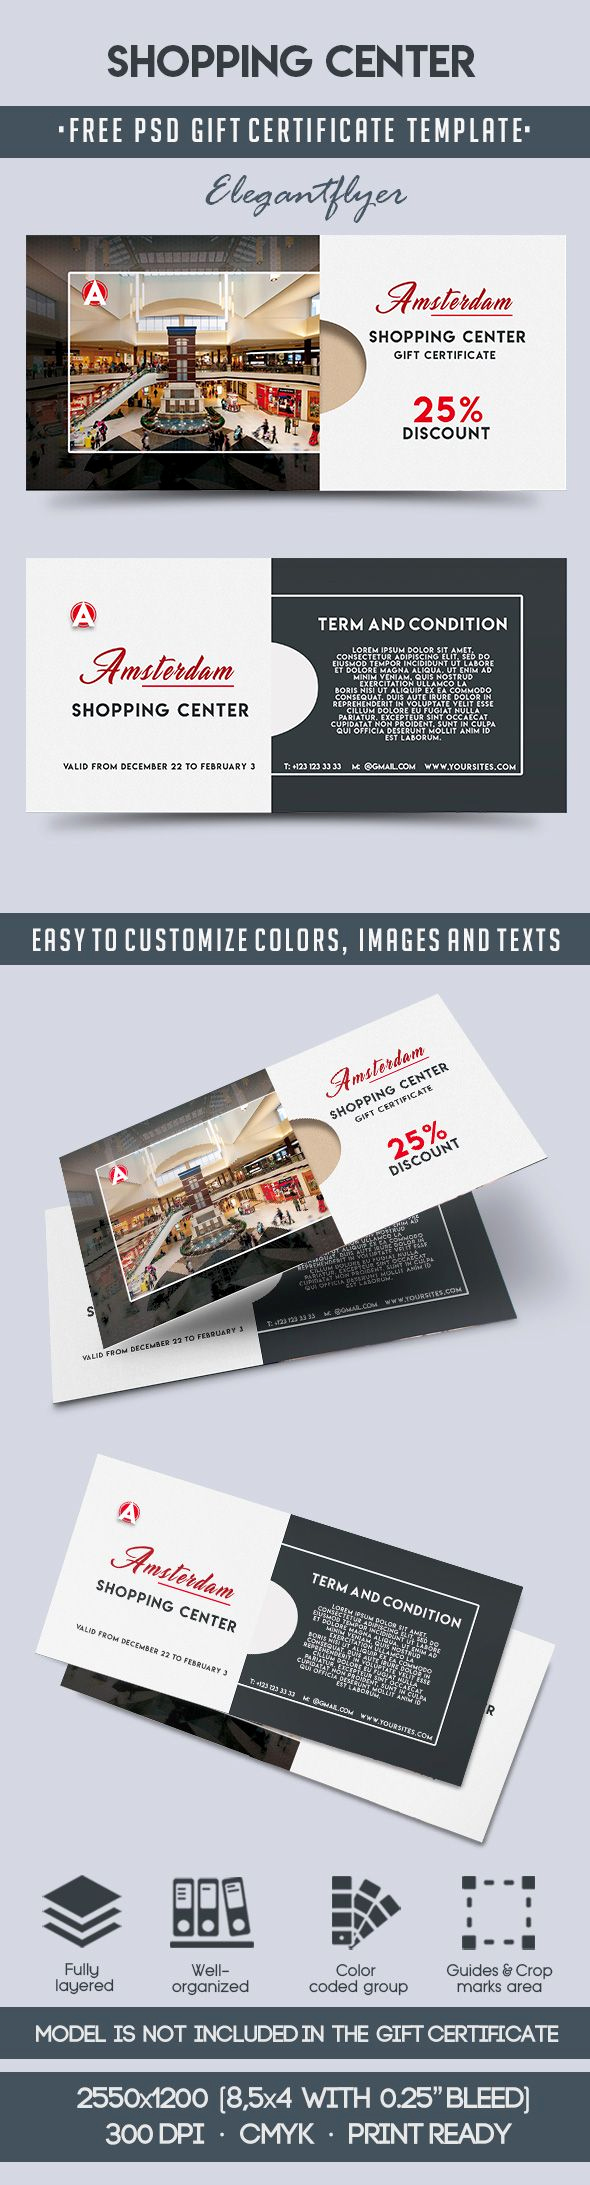 Gift Certificate Template Psd Unique Shopping Center – Free Gift Certificate Psd Template – by